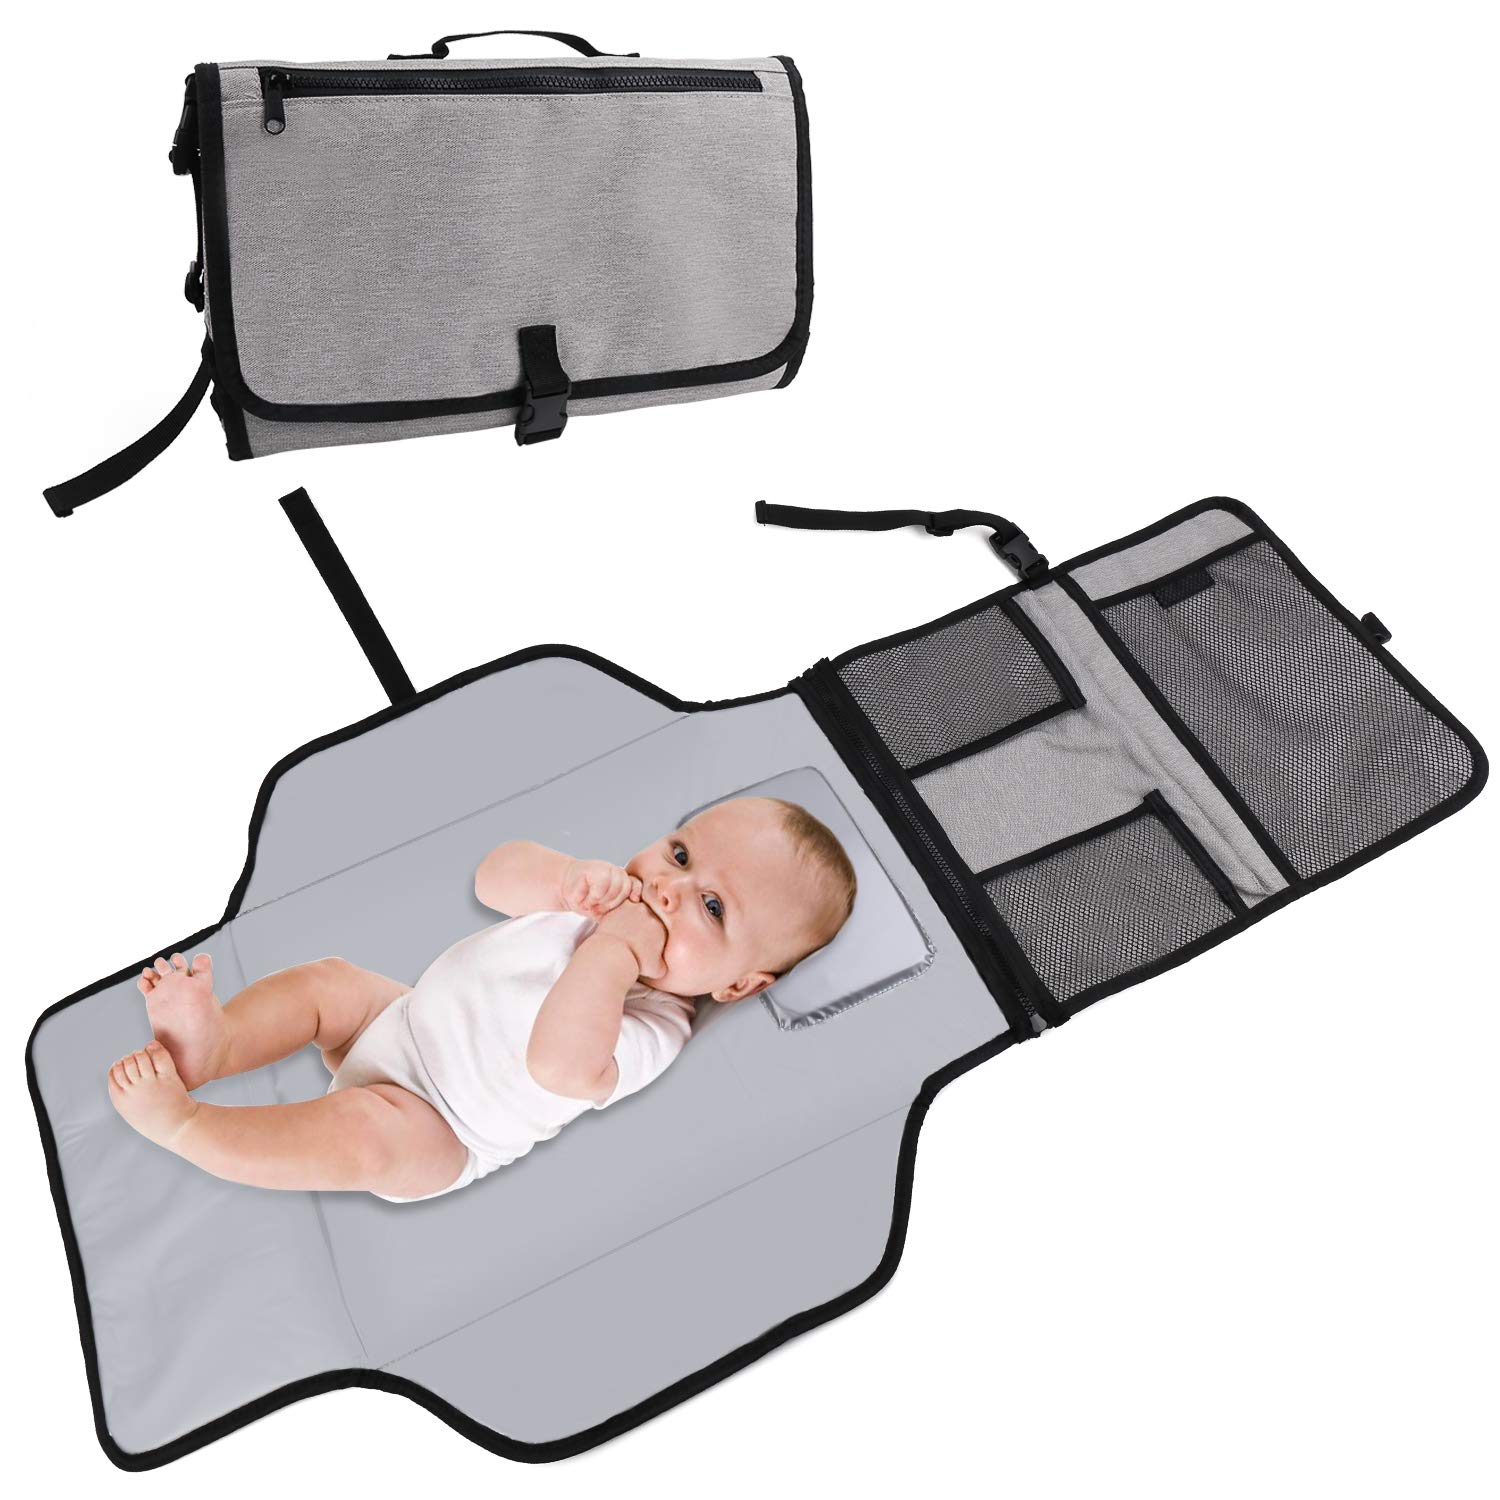 Baby Portable Changing Pad, Waterproof Diaper Bag, Travel Mat Station Built-in Head Cushion and Pockets Grey Large